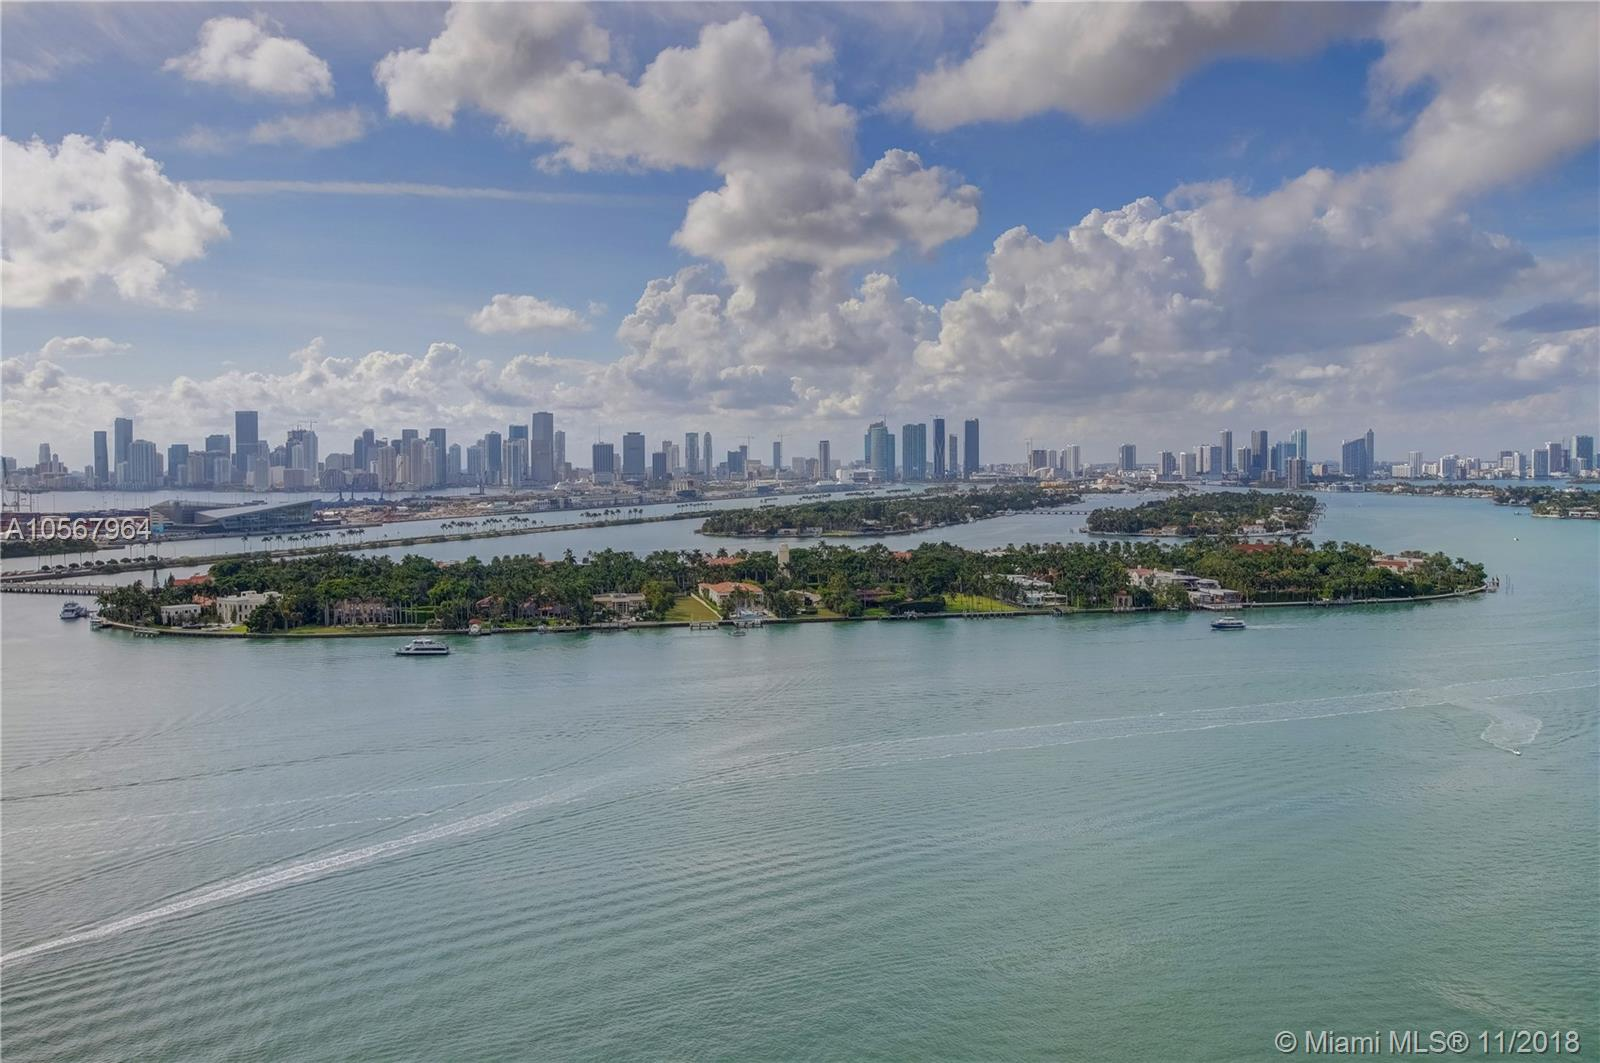 "Become one of a privileged few to enjoy the best Day AND Night views in Miami.  Views from every room.  Bay-Sunsets-Cruise Ships-Ocean...and more. This fully redesigned & renovated 3 bedroom layout was converted to a large 2/2.5 with nearly 1400SqFt.  The only one like it in the building.  Gut-renovated in 2017.  Just completed in 2018.  Exquisite wood flooring throughout.  Redesigned open kitchen with bar/countertop positioned to maximize the gorgeous bay views.  Enlarged living room.  Custom ""smart house"" with all lighting/temperature/music/etc controlled via smart phone or tablet.   Italian doors and cabinetry.  The highest quality fixtures and appliances.  All new AC and ductwork.  Painstaking effort made to open the space by removing soffetts, sprinklers. Custom lighting."